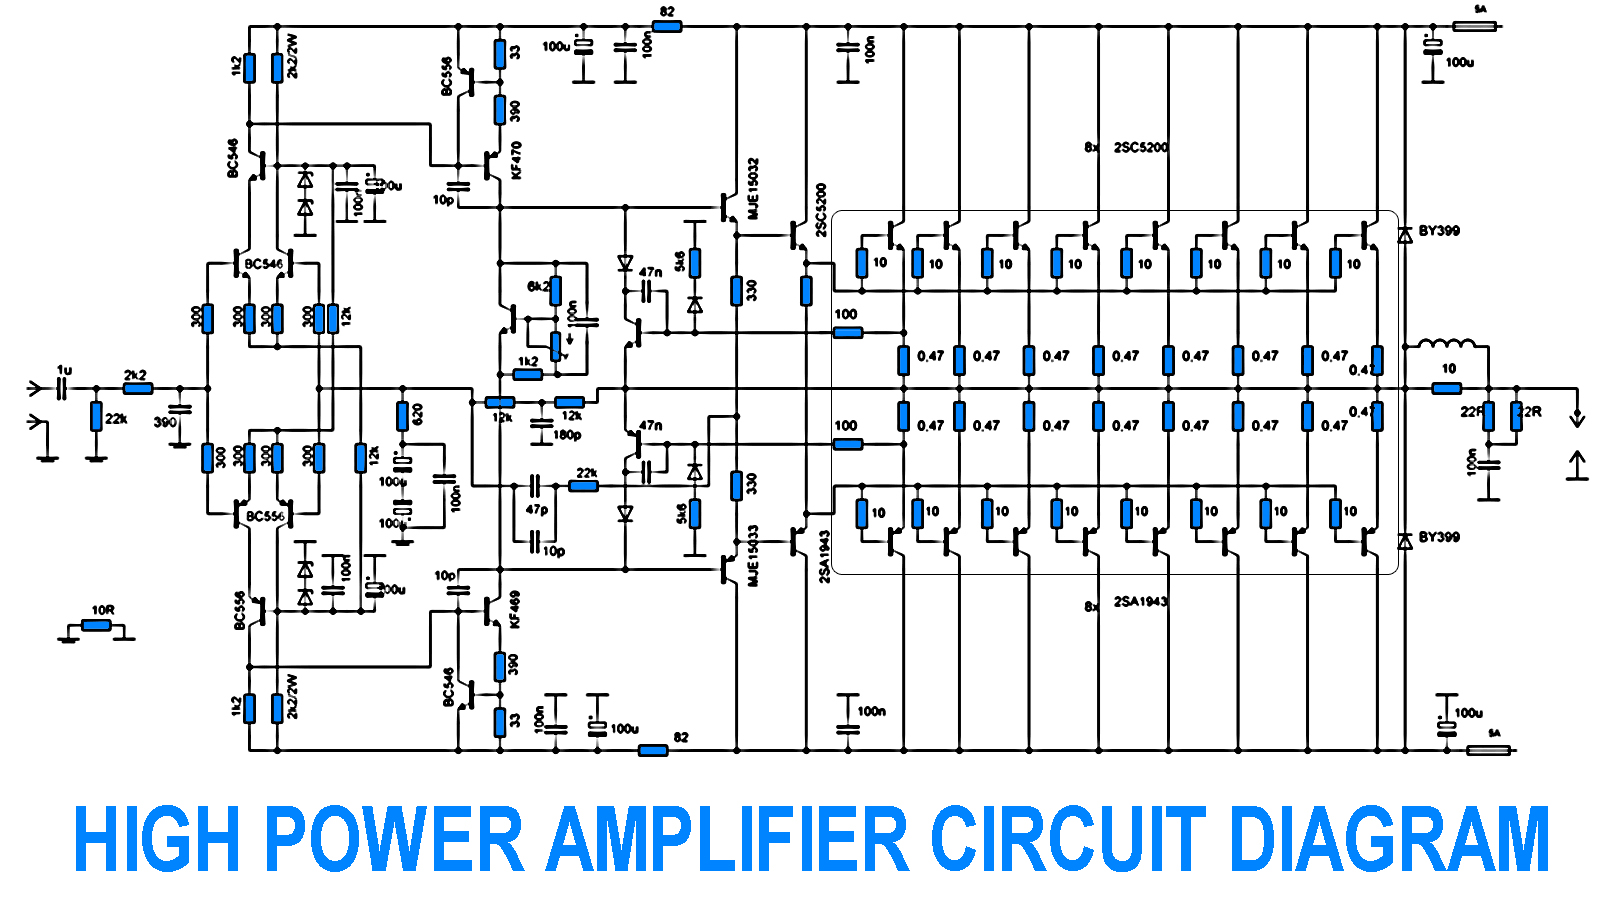 Transistor 2sc5200 Amplifier Circuit - 700w Power Amplifier With 2sc5200  2sa1943 - Transistor 2sc5200 Amplifier Circuit